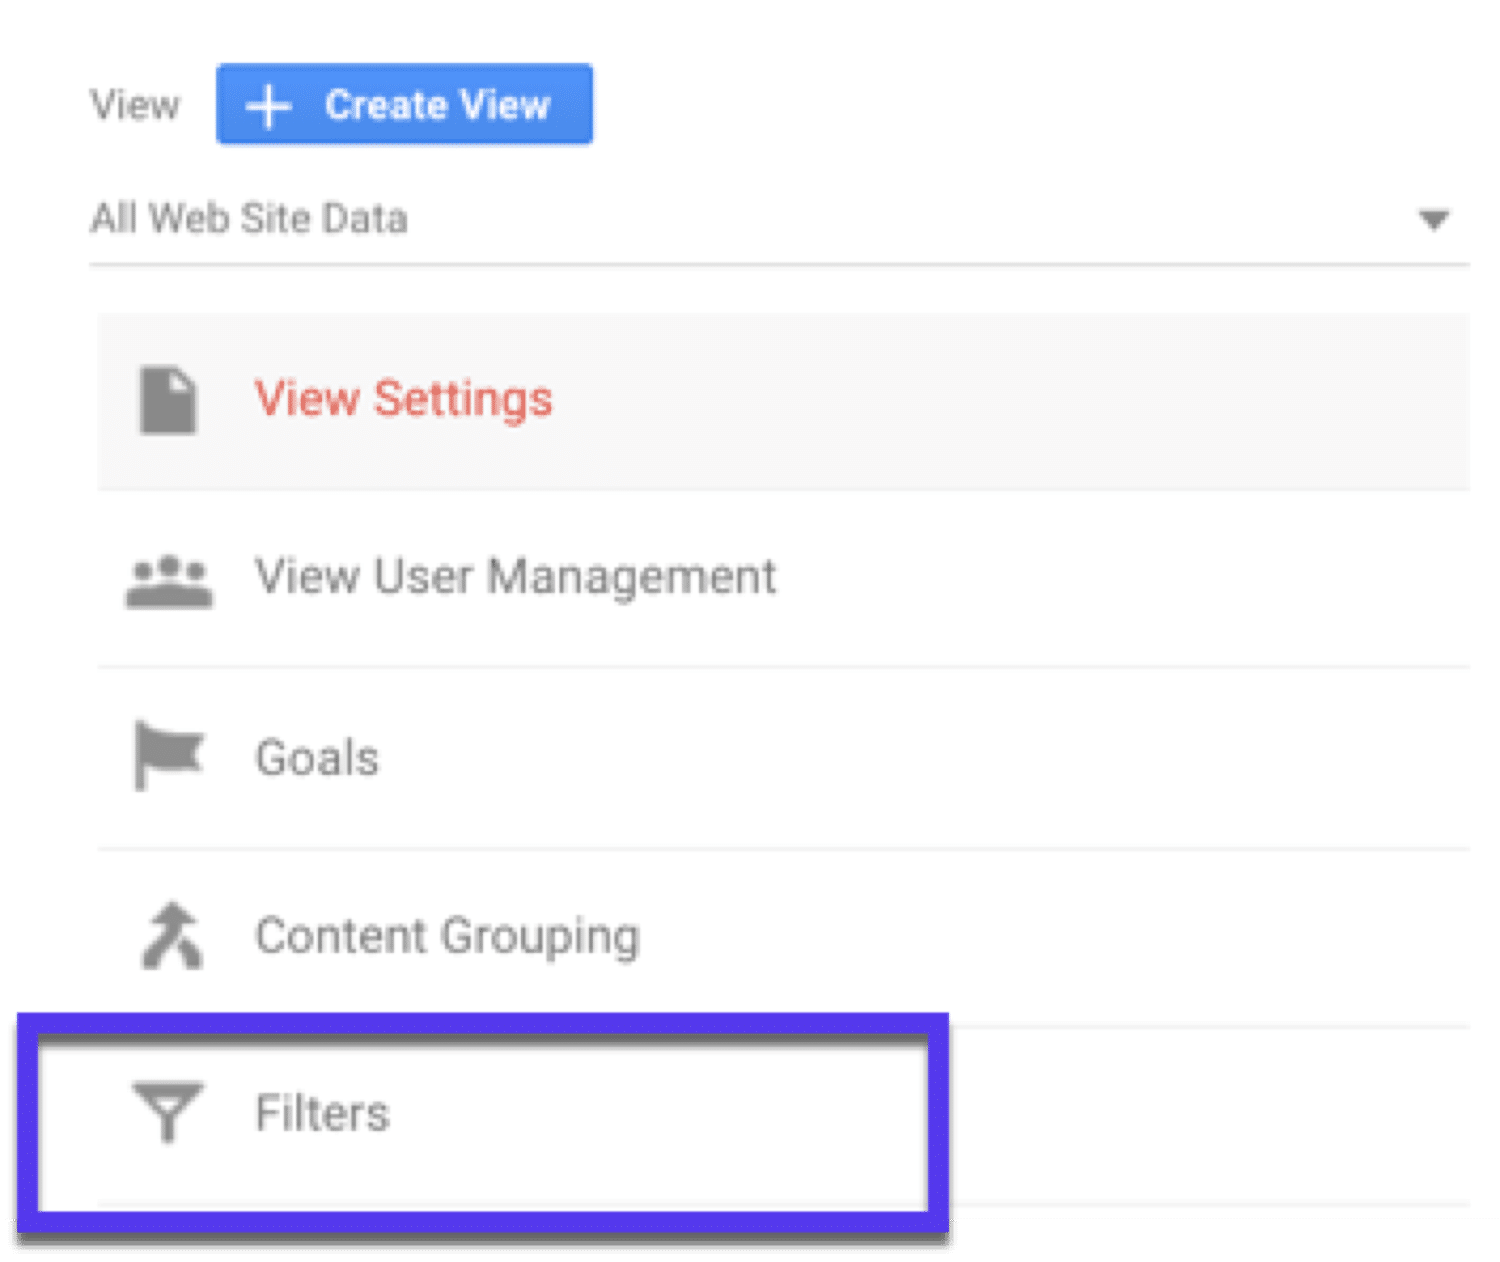 Creating a filter in Google Analytics